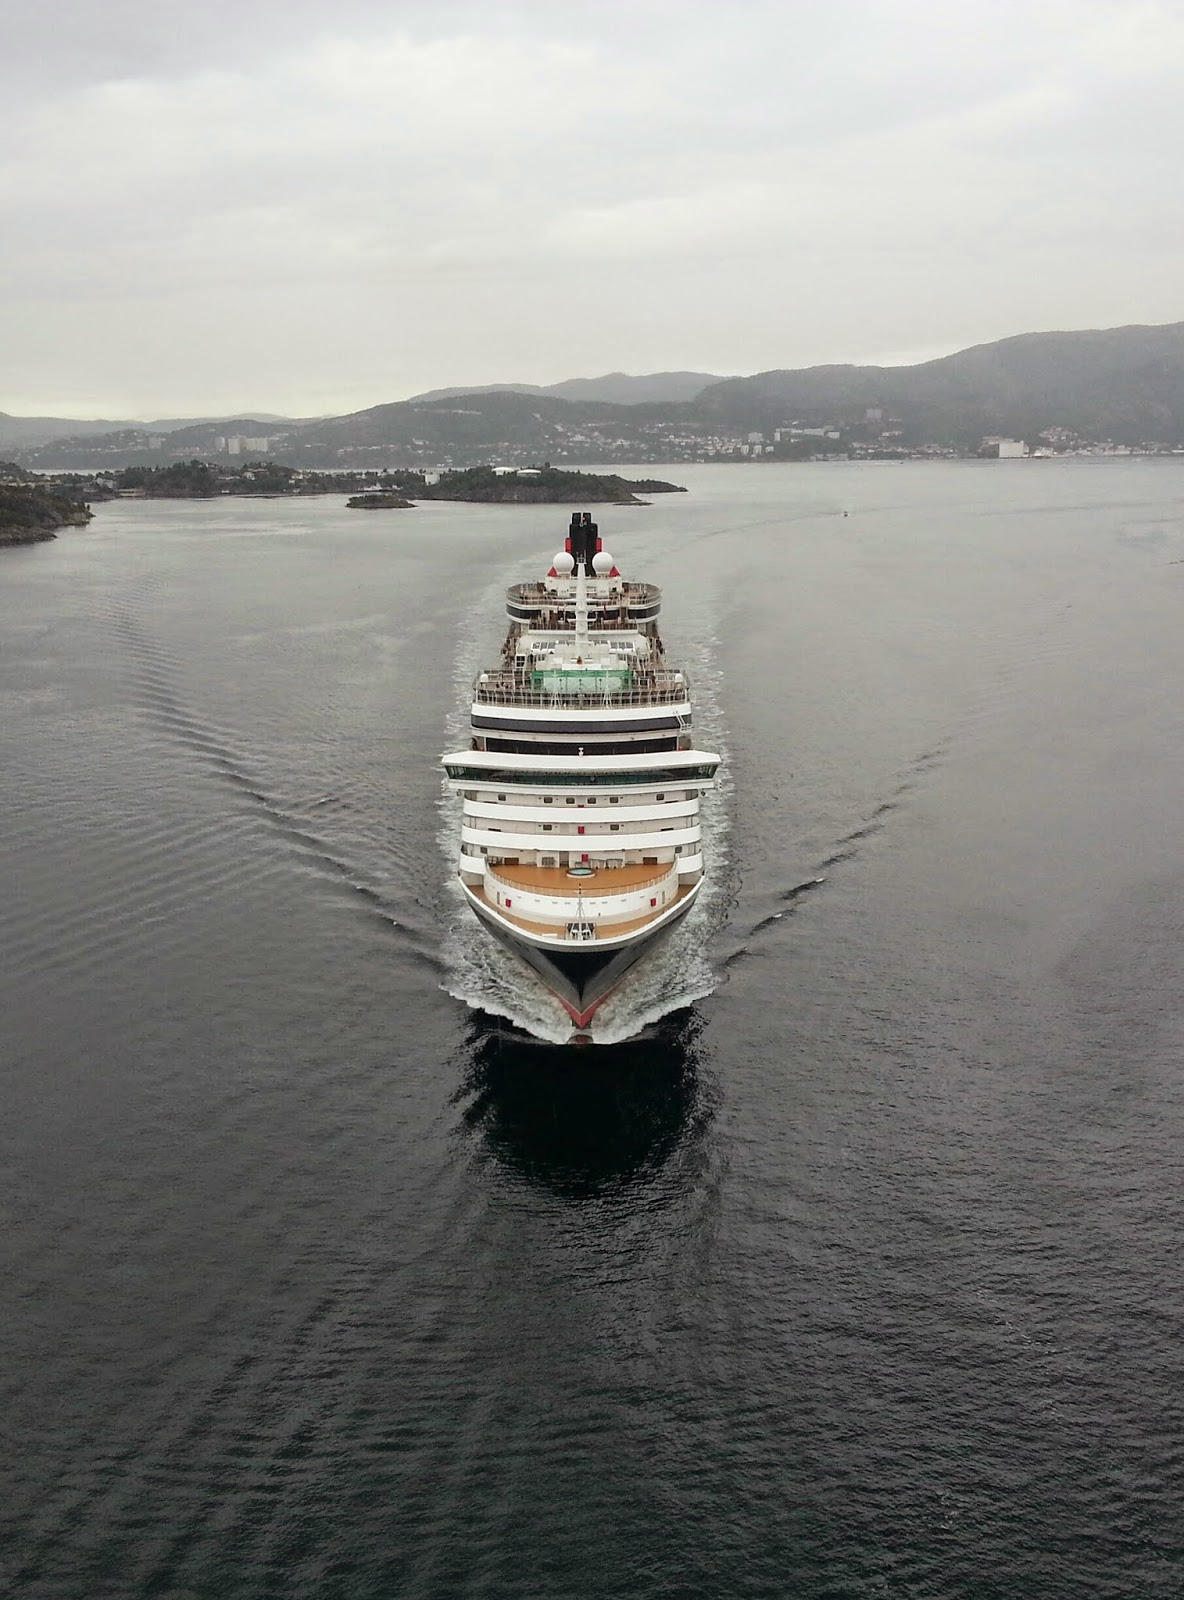 Cruise Ship Queen Victoria, Askøy Bridge, Bergen